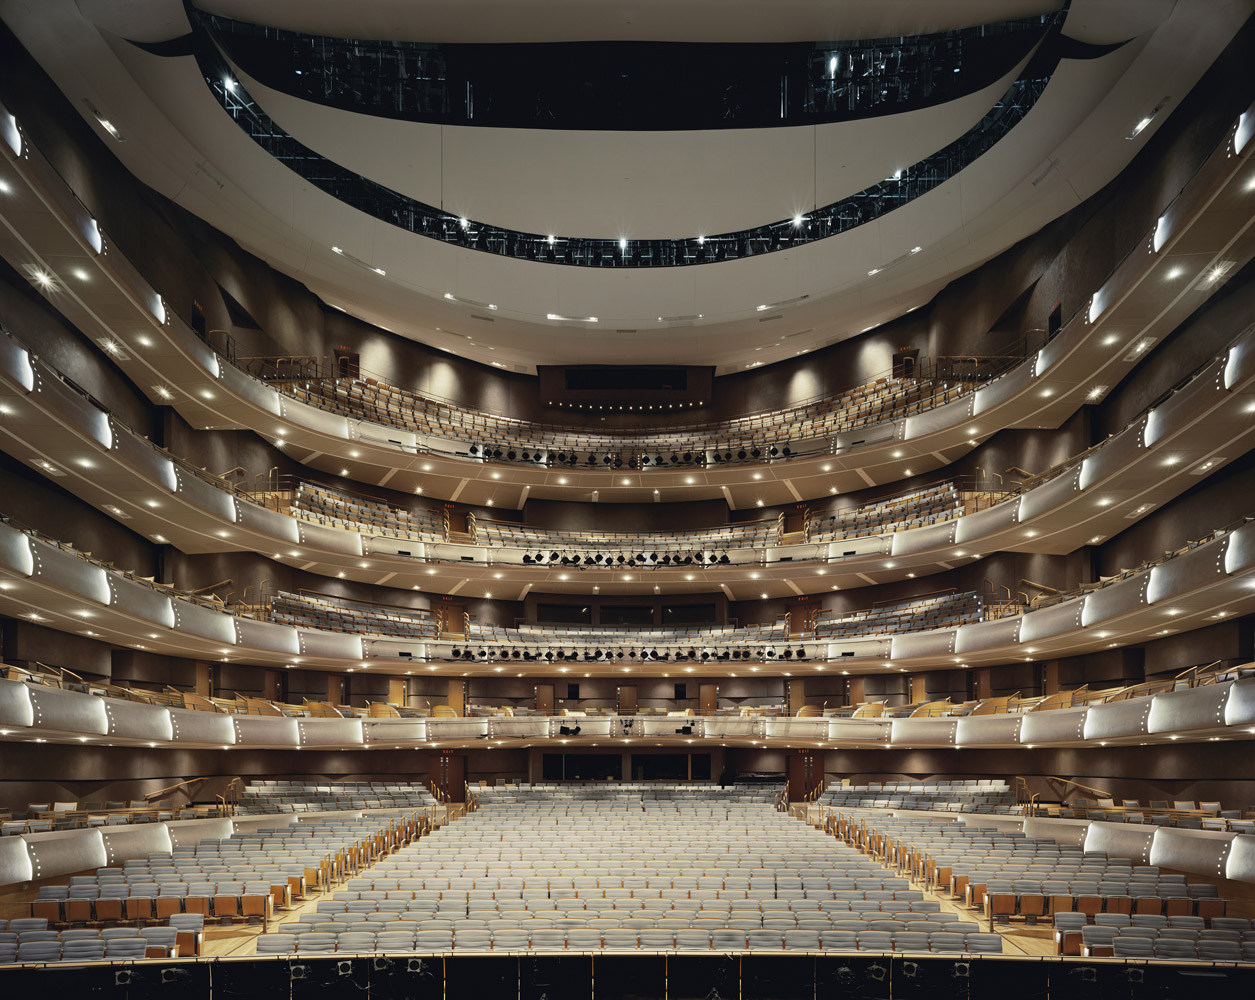 Four Seasons Centre for the Performing Arts, Toronto, Canada, 2011, by David Leventi. Archive print on Dibond of the interior of the theatre